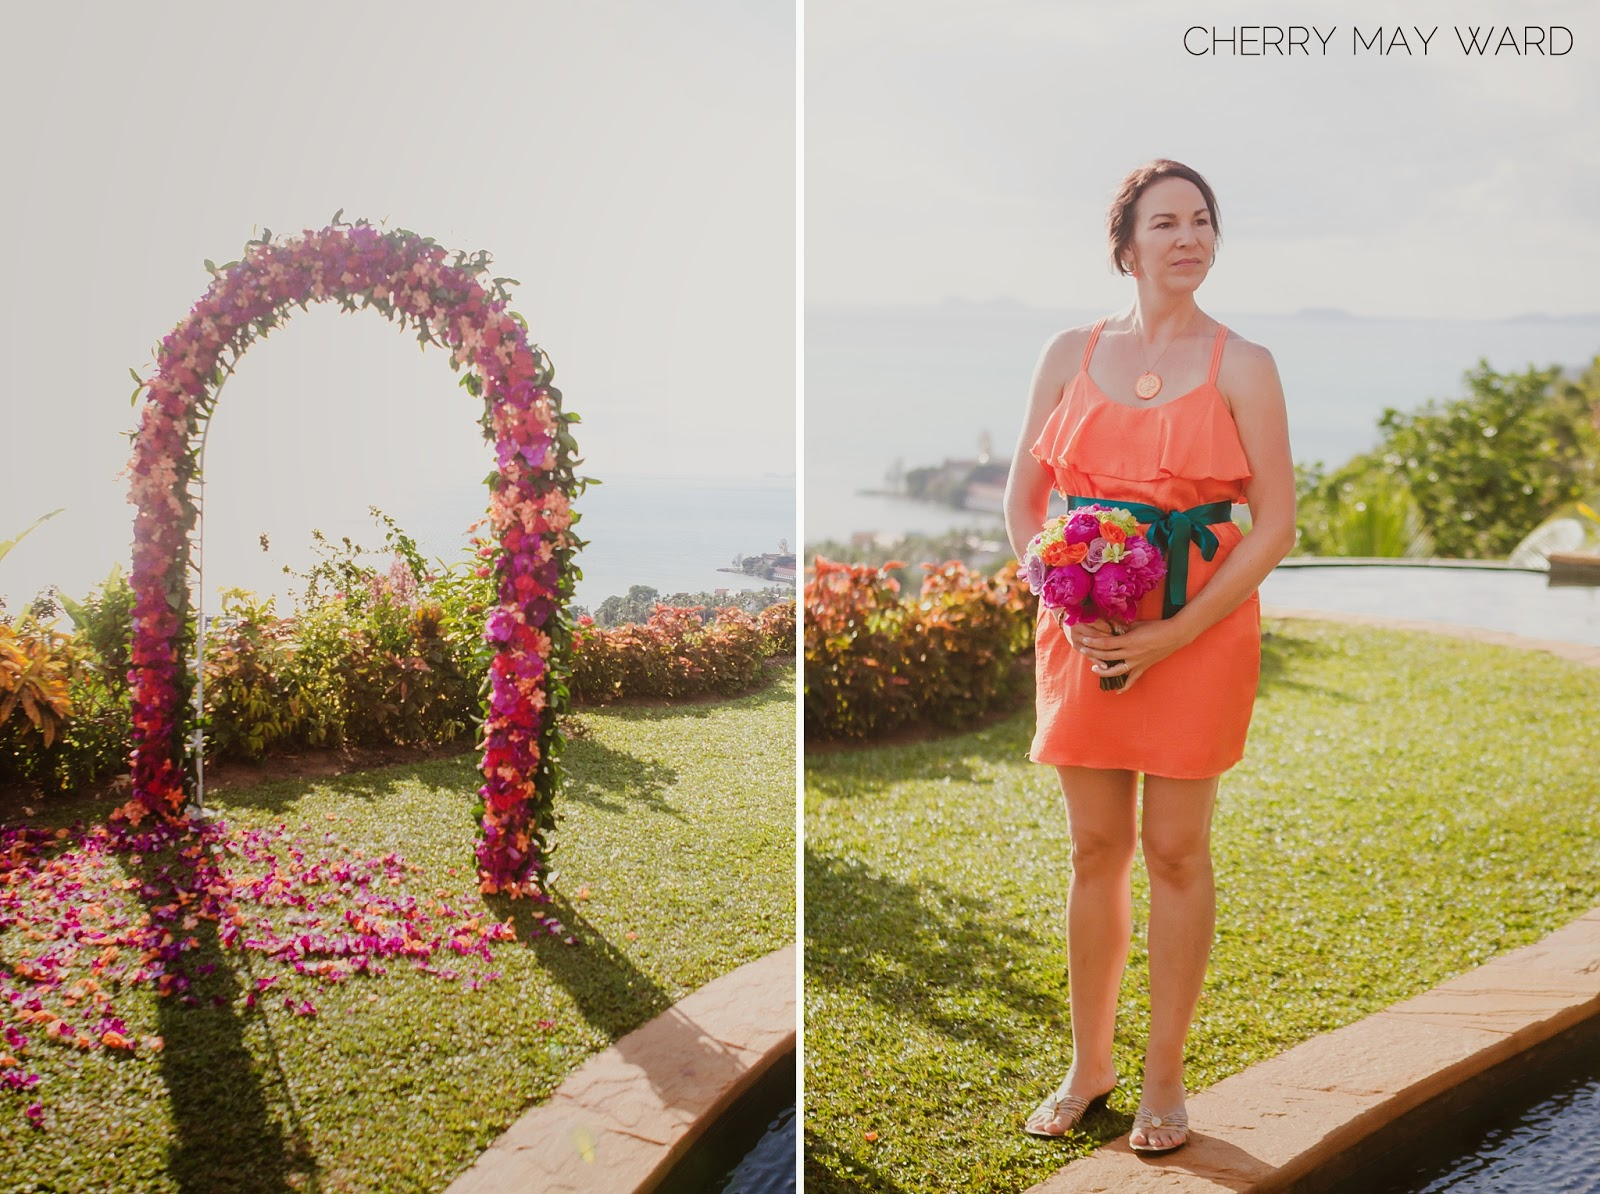 maid of honour at the aisle, Koh Samui wedding with colourful details, Thailand wedding colourful DIY decorations, destination wedding in Thailand, Cherry May Ward Photography